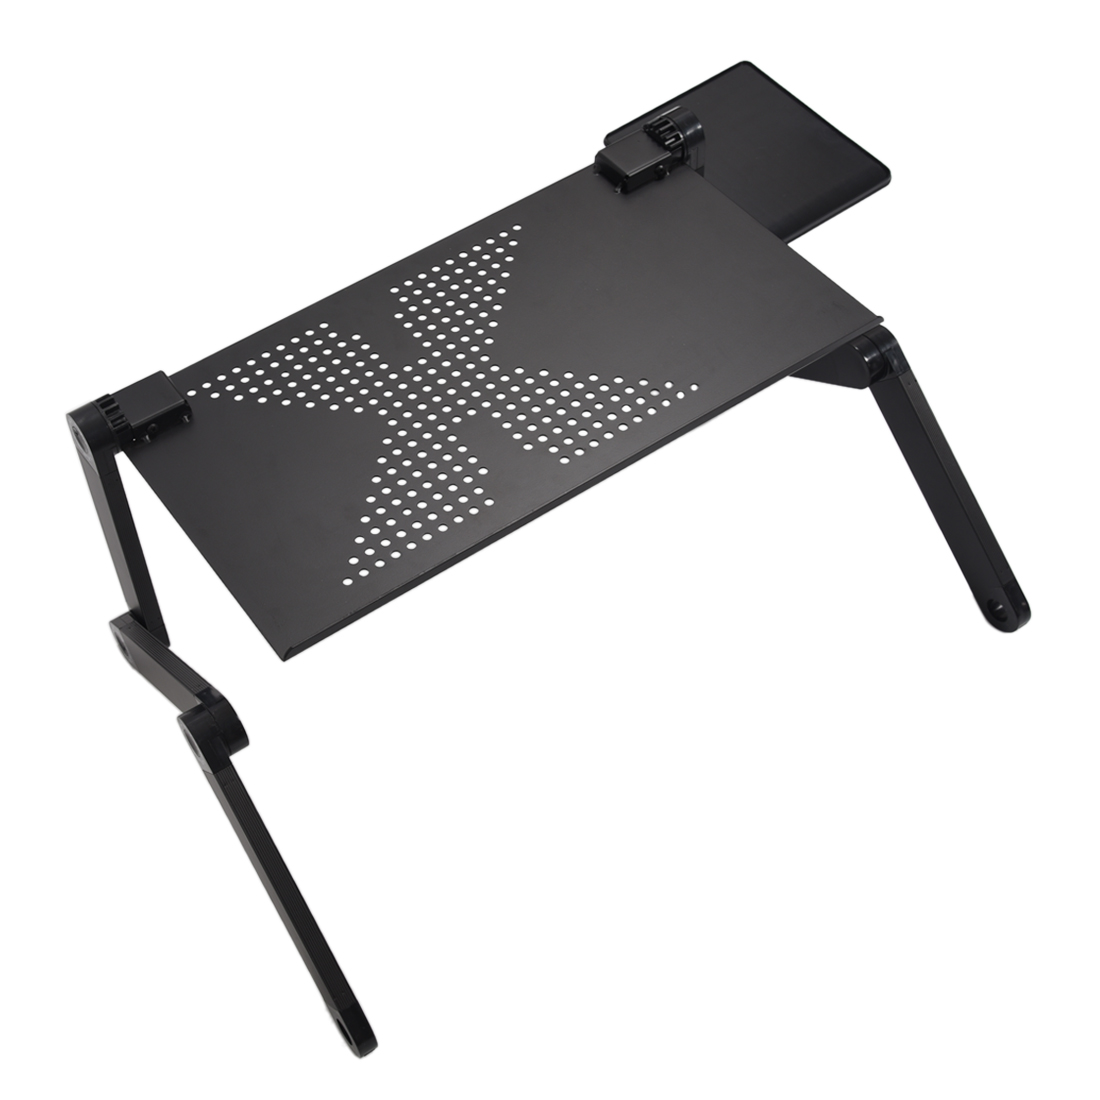 Portable Foldable Adjustable Laptop Desk Computer Table Stand Tray For Sofa Bed Black utoo brand stormwind auto masturbator 10 vibration pattern masturbation cup charging edition male sex toys white black colors